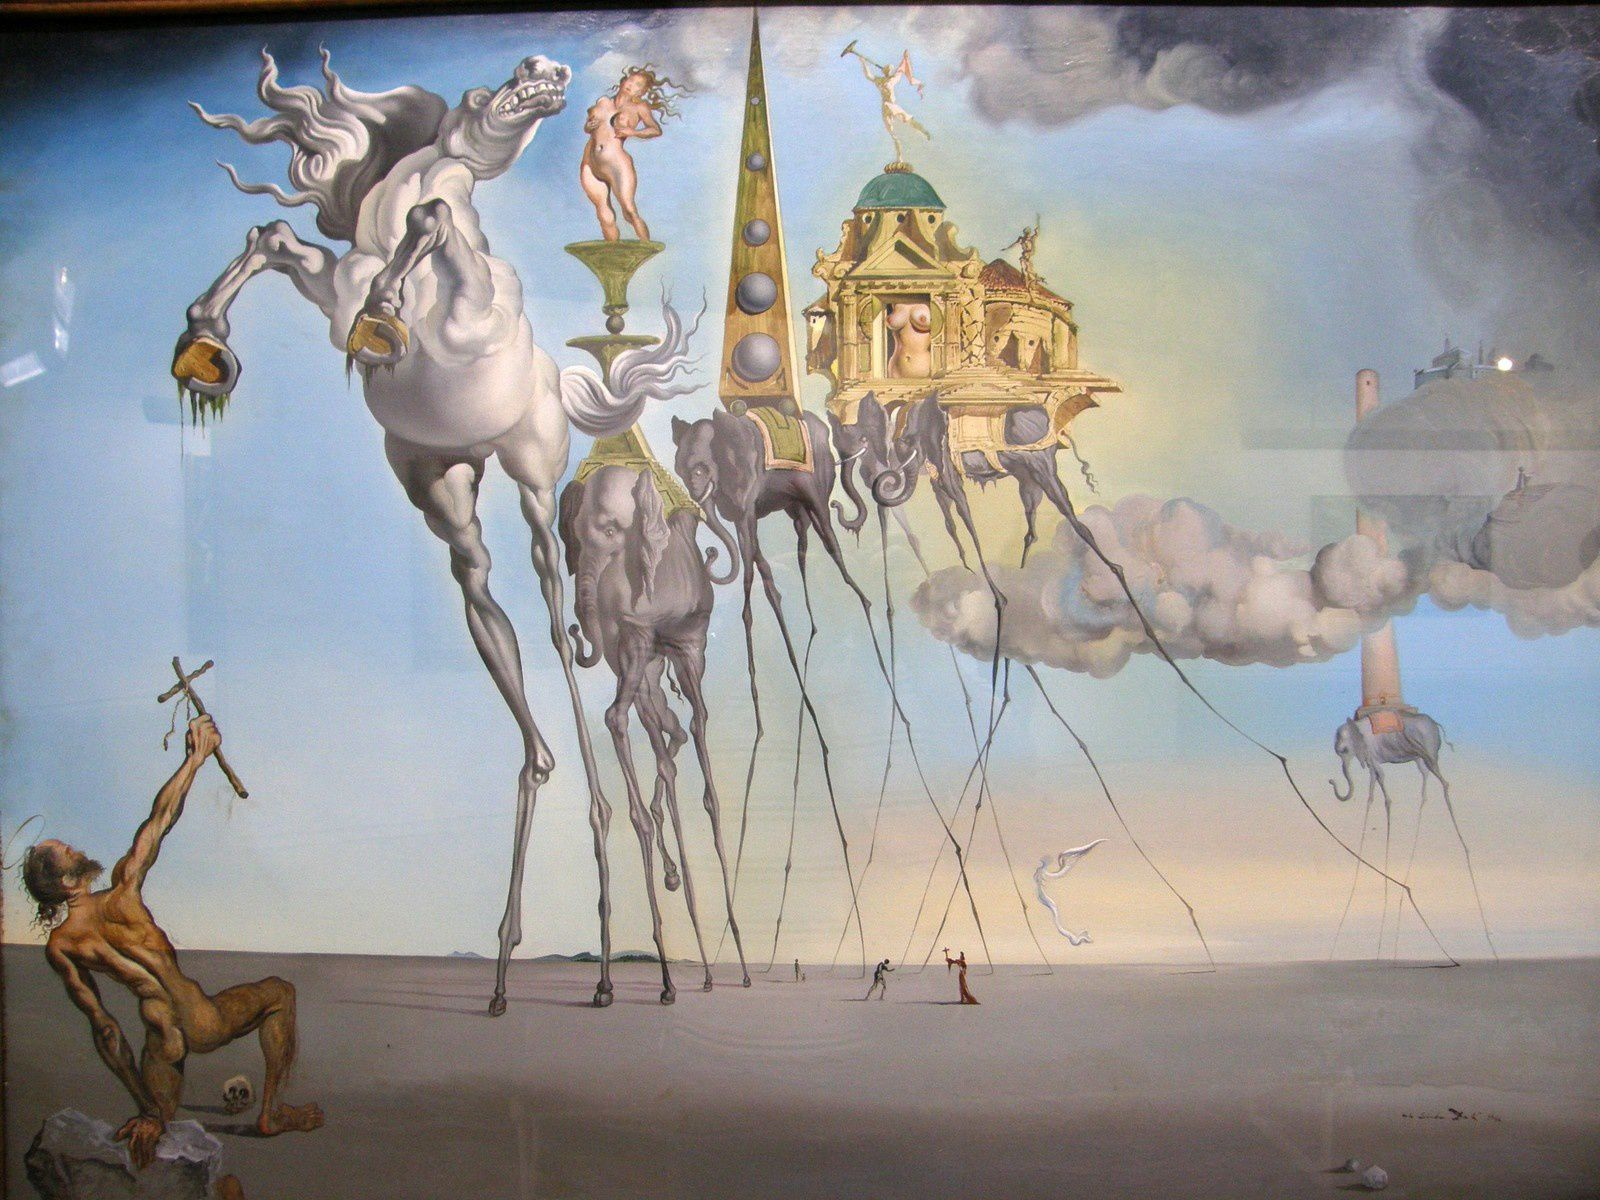 La tentation de Saint Antoine (Dali)... Belle mécanique de la séduction!